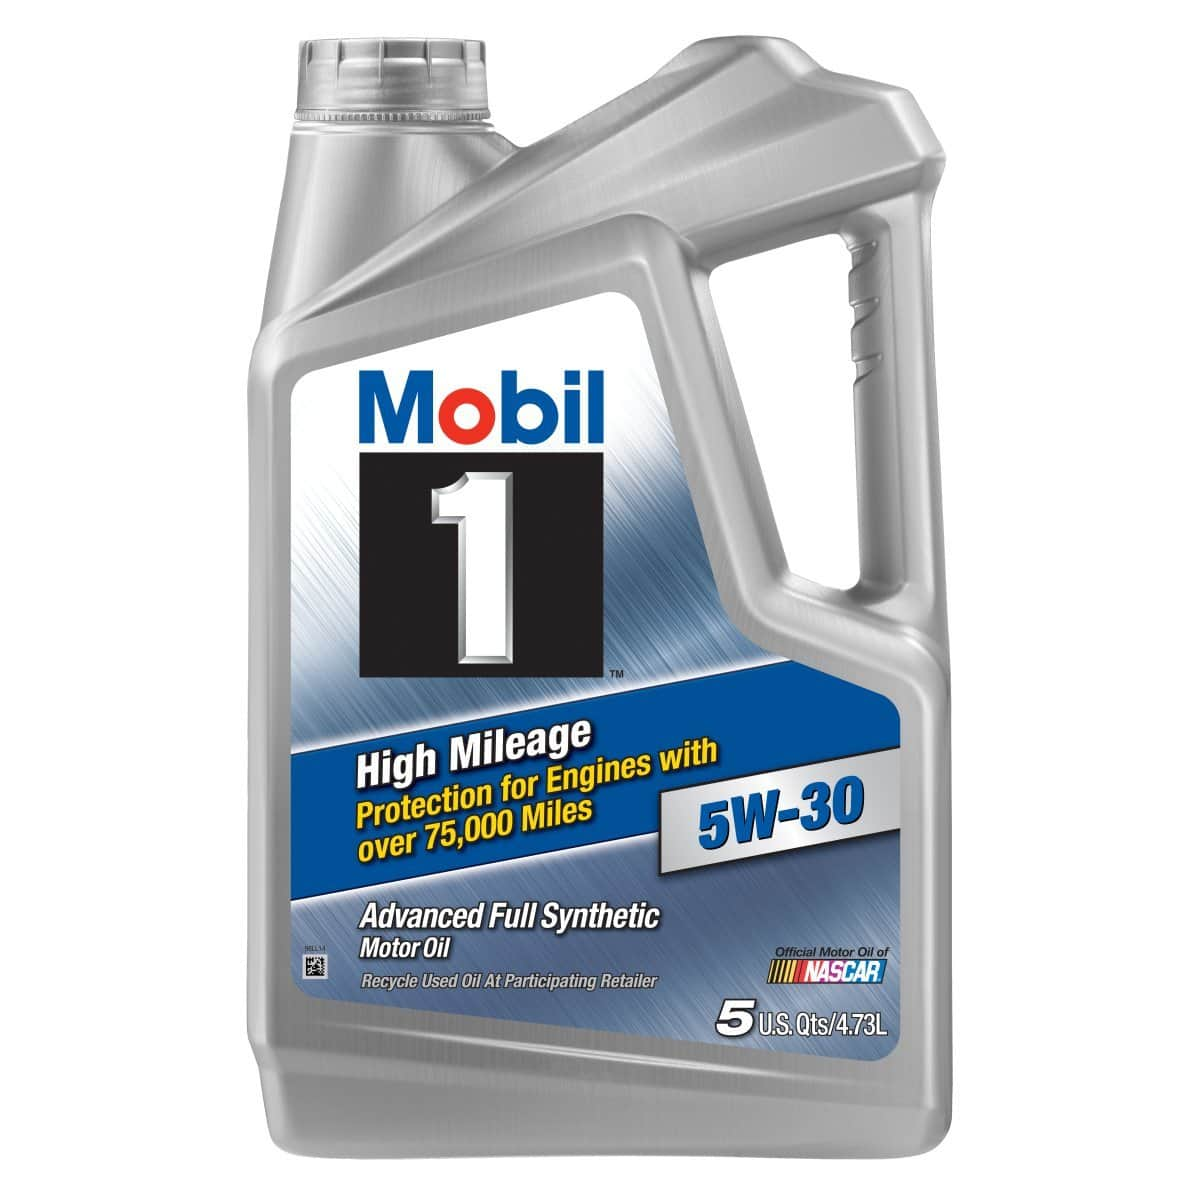 5qt. Mobil 1 5W-30 Full Synthetic Motor Oil  $12 after $12 Rebate